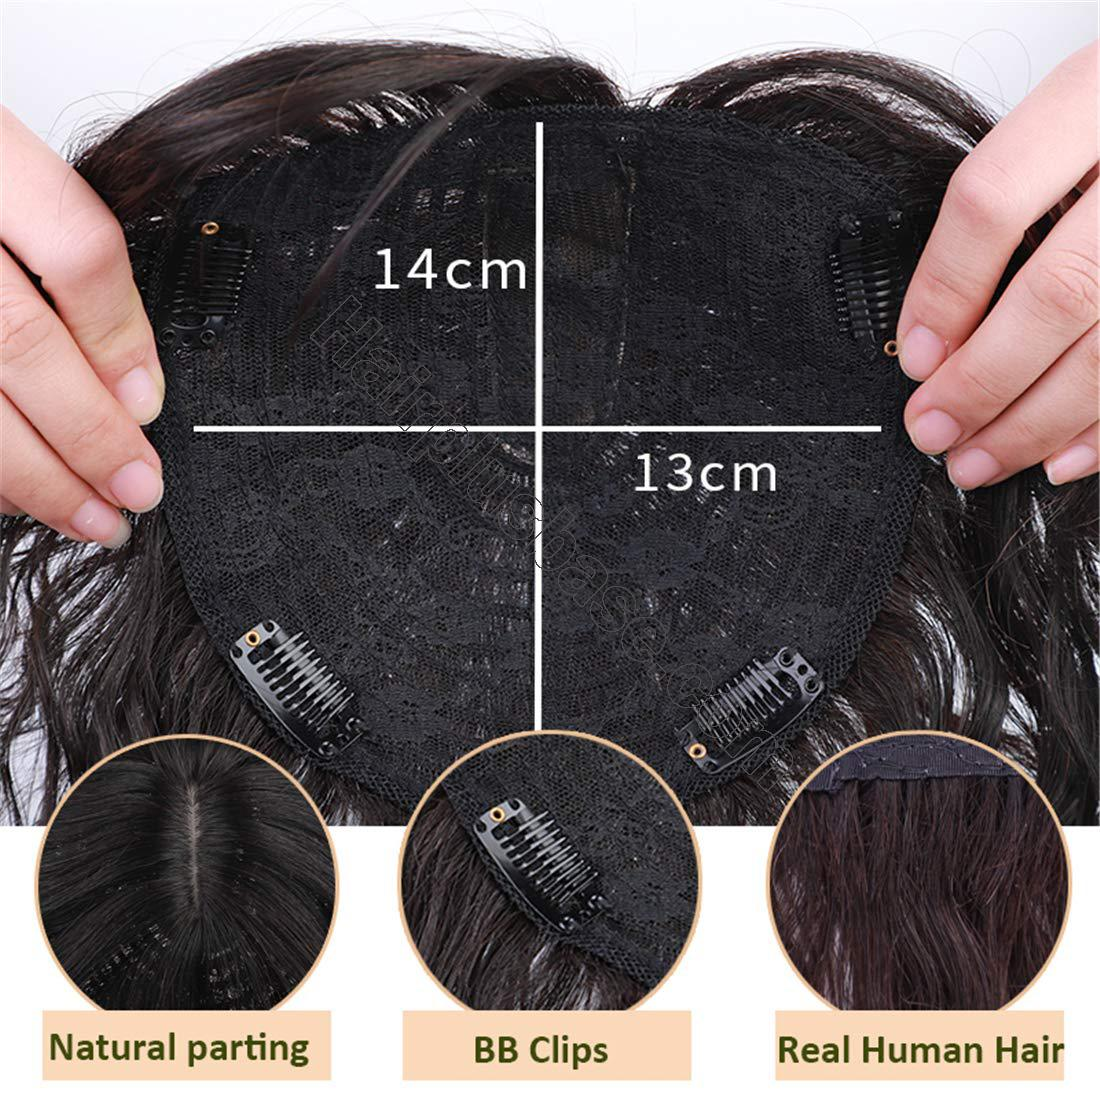 Real Human Hair Crown Hair Pieces Curly Hair Topper with Bangs for Women with Thinning Hair 4